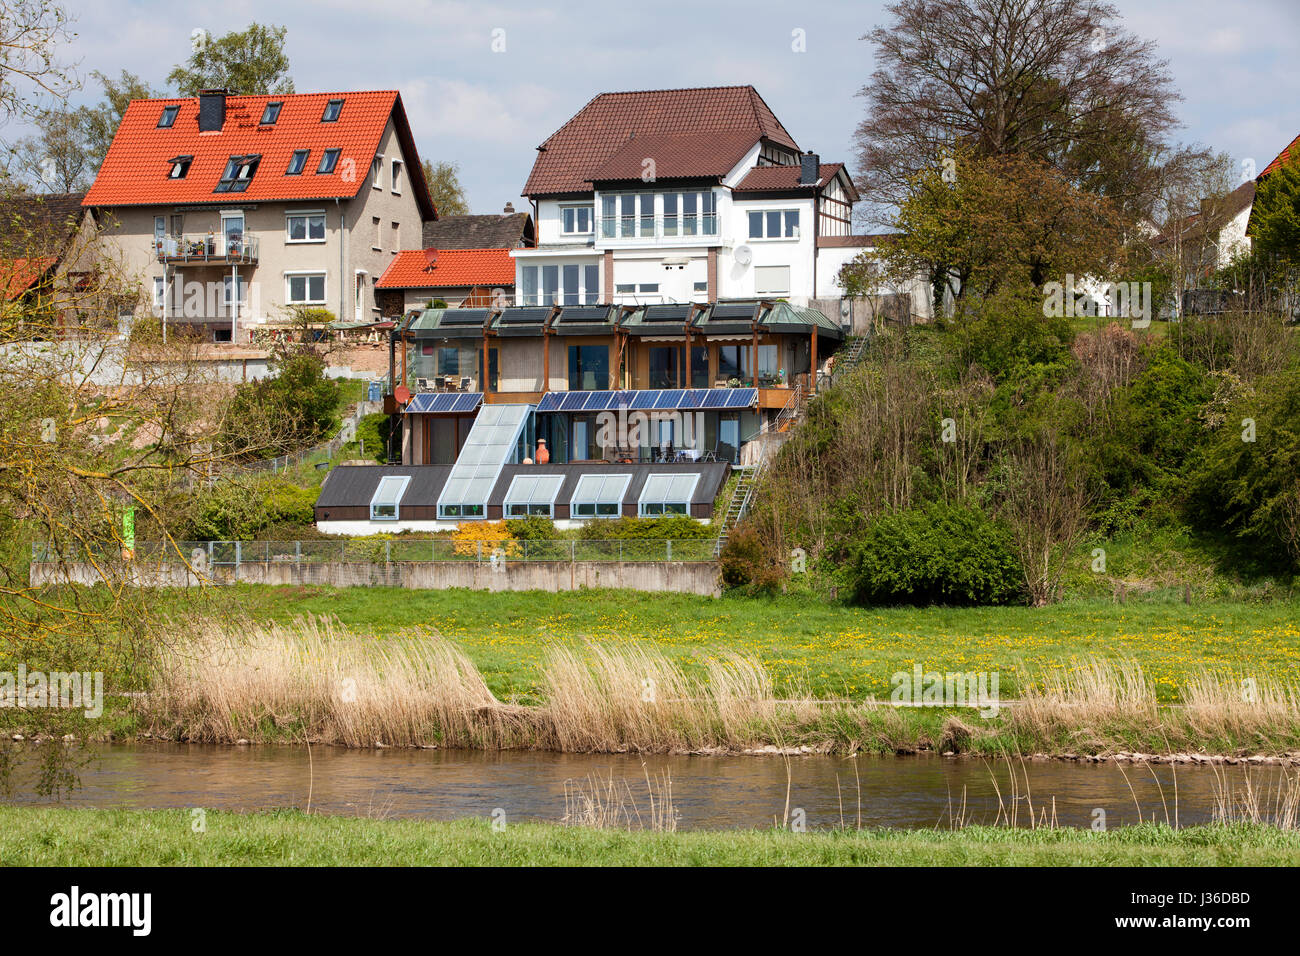 Rear of the houses on the banks of the River Weser, Bodenfelde, district of Northeim, Lower Saxony, Germany - Stock Image